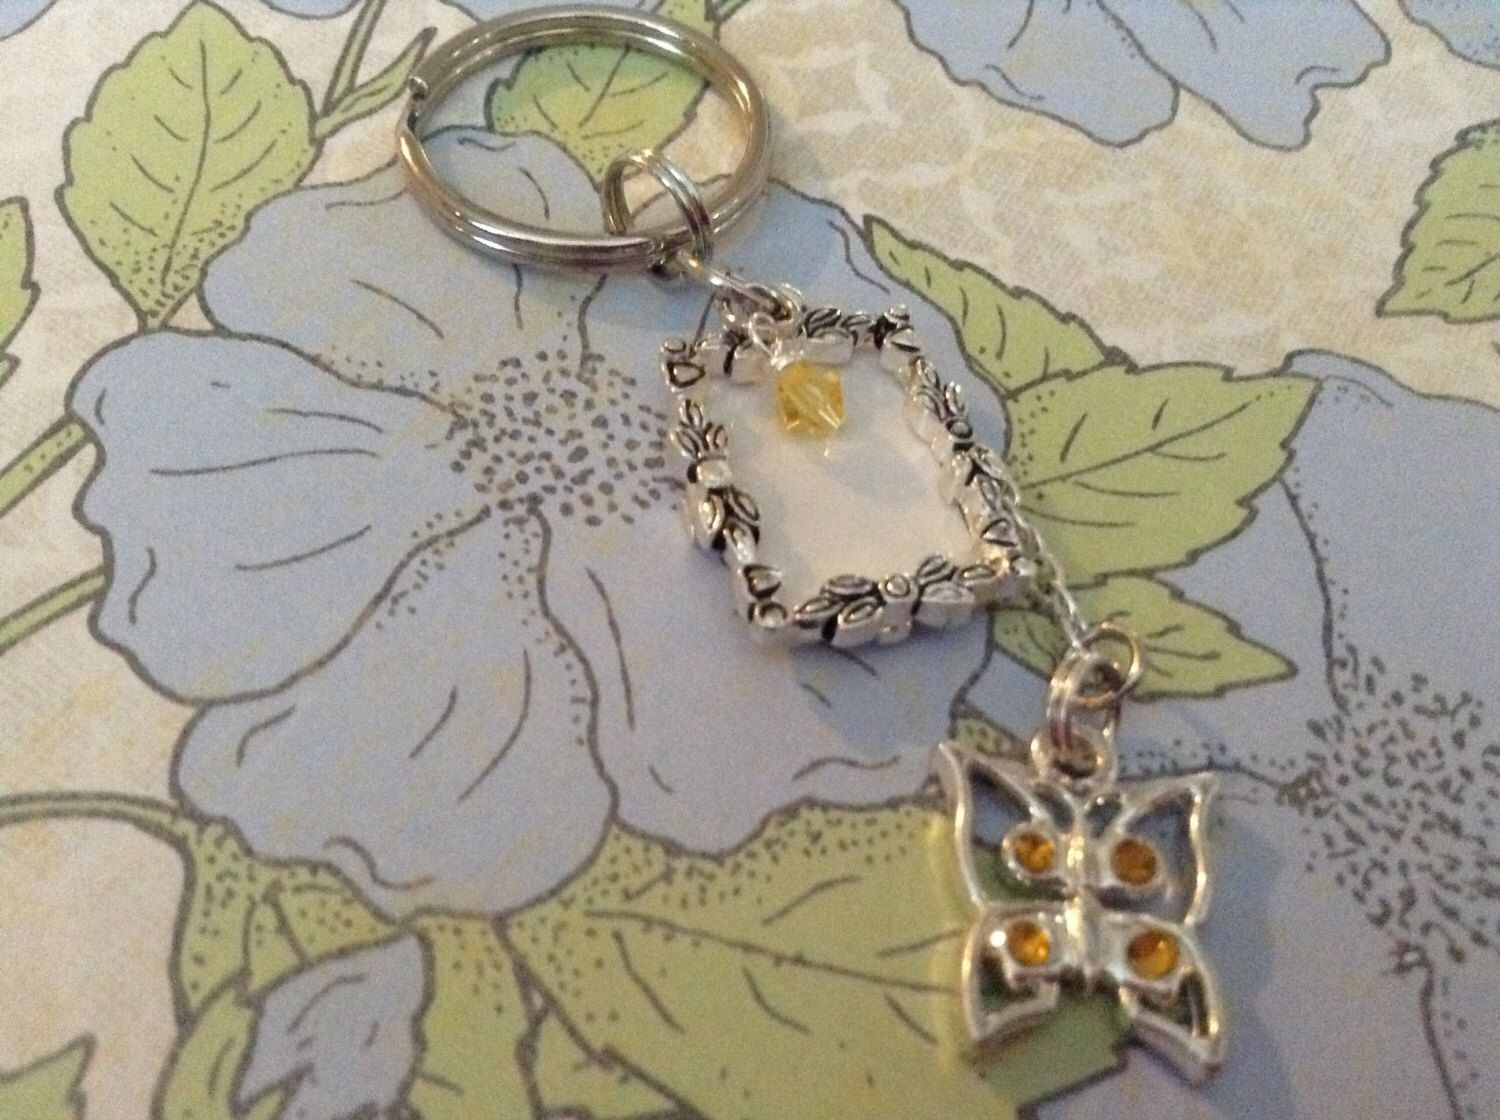 Crystal butterfly picture frame keychain with swarovski crystal crystal butterfly picture frame keychain with swarovski crystal accent jeuxipadfo Image collections